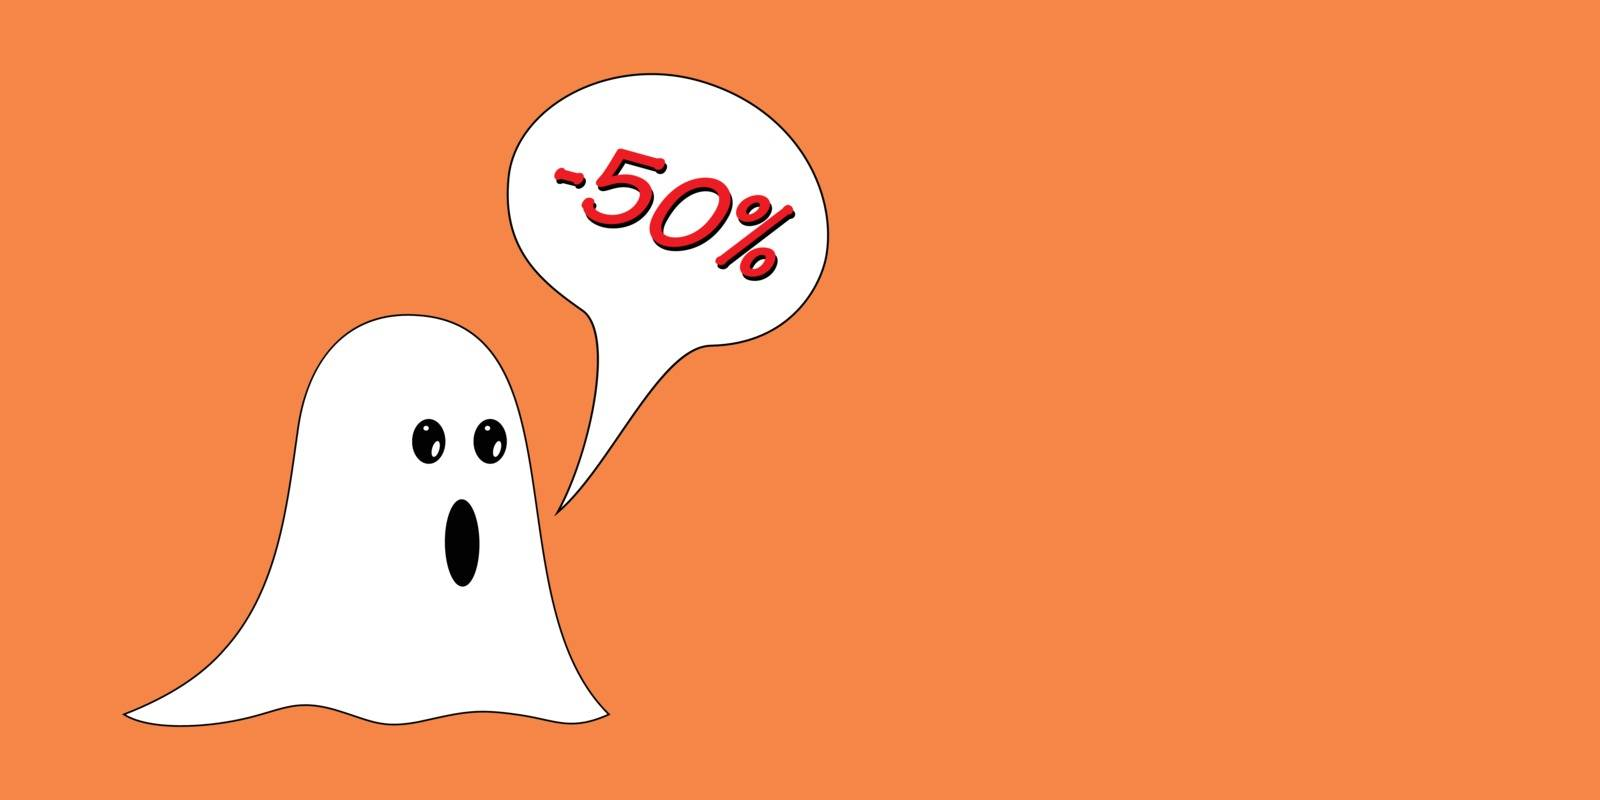 Halloween discount with amazed ghost, on orange isolated background. Red -50% in speech bubble. Empty space for text.